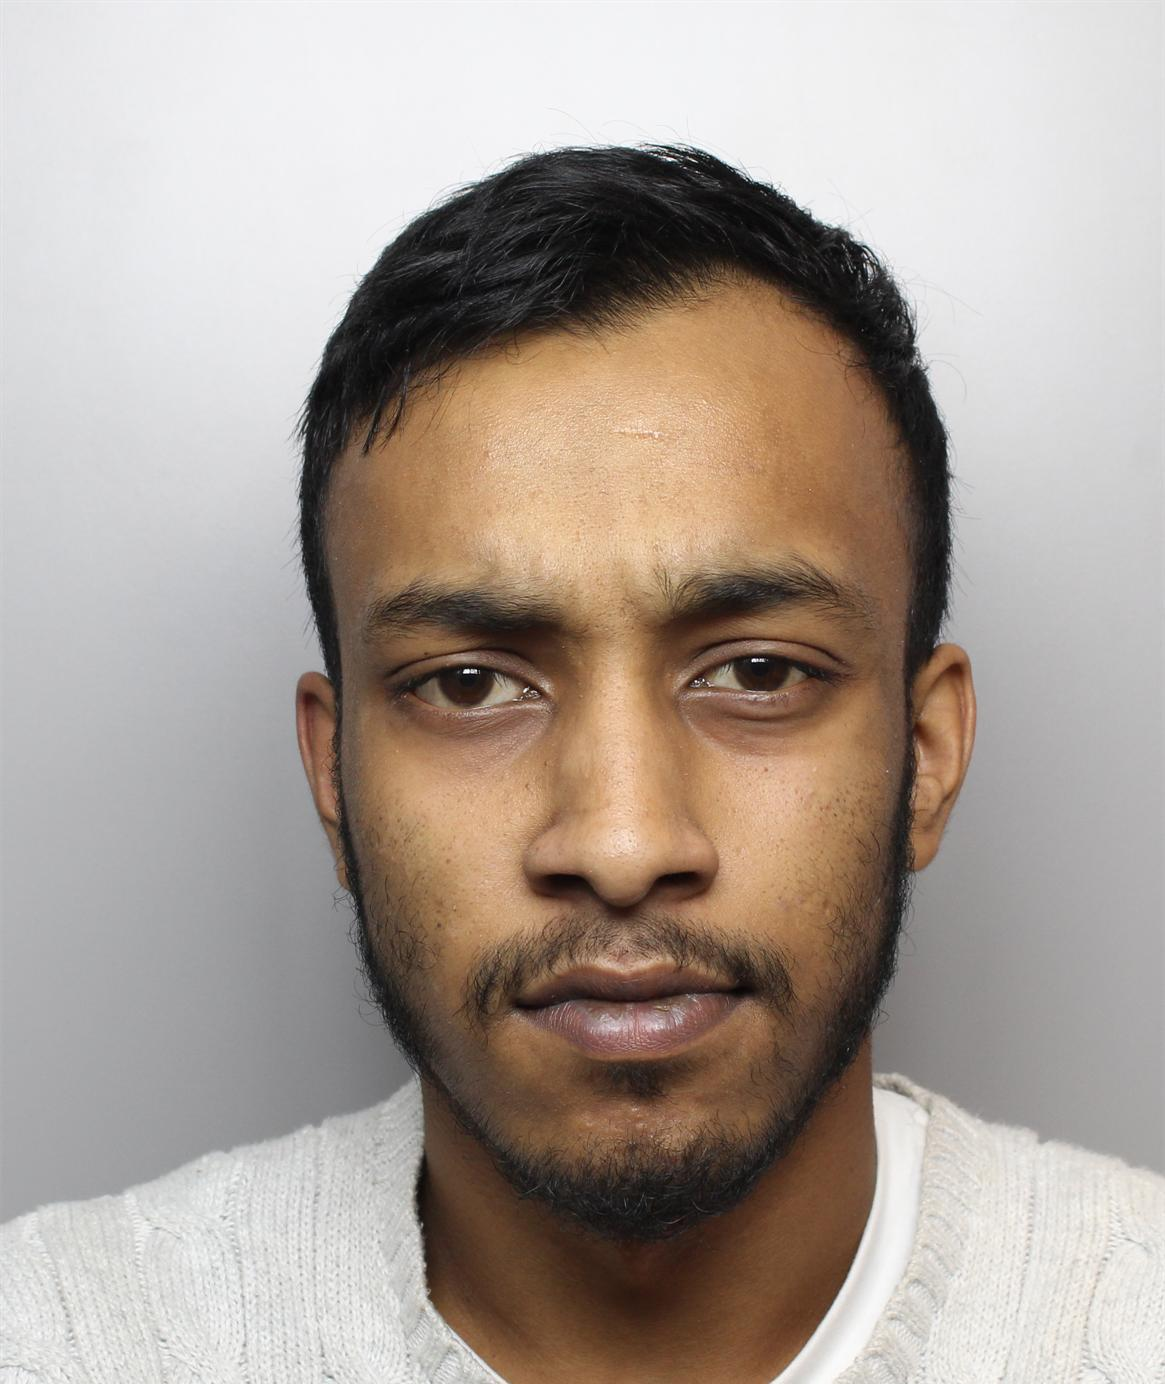 Mohammed Ahmed, who was jailed for five years